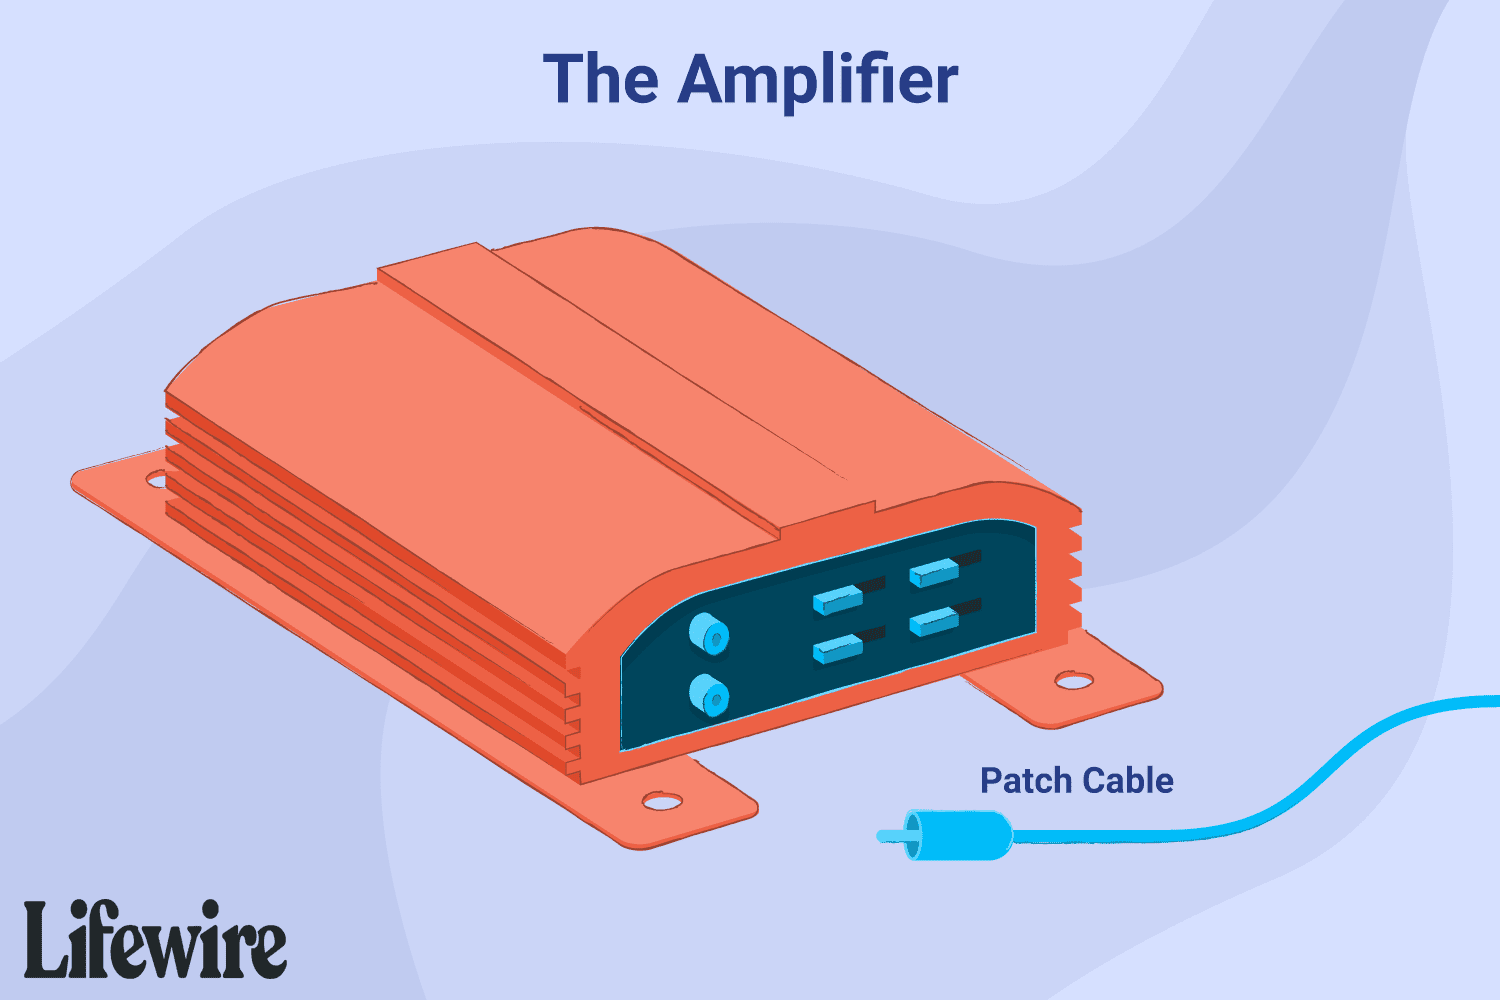 A car amplifier showing a disconnected patch cable.